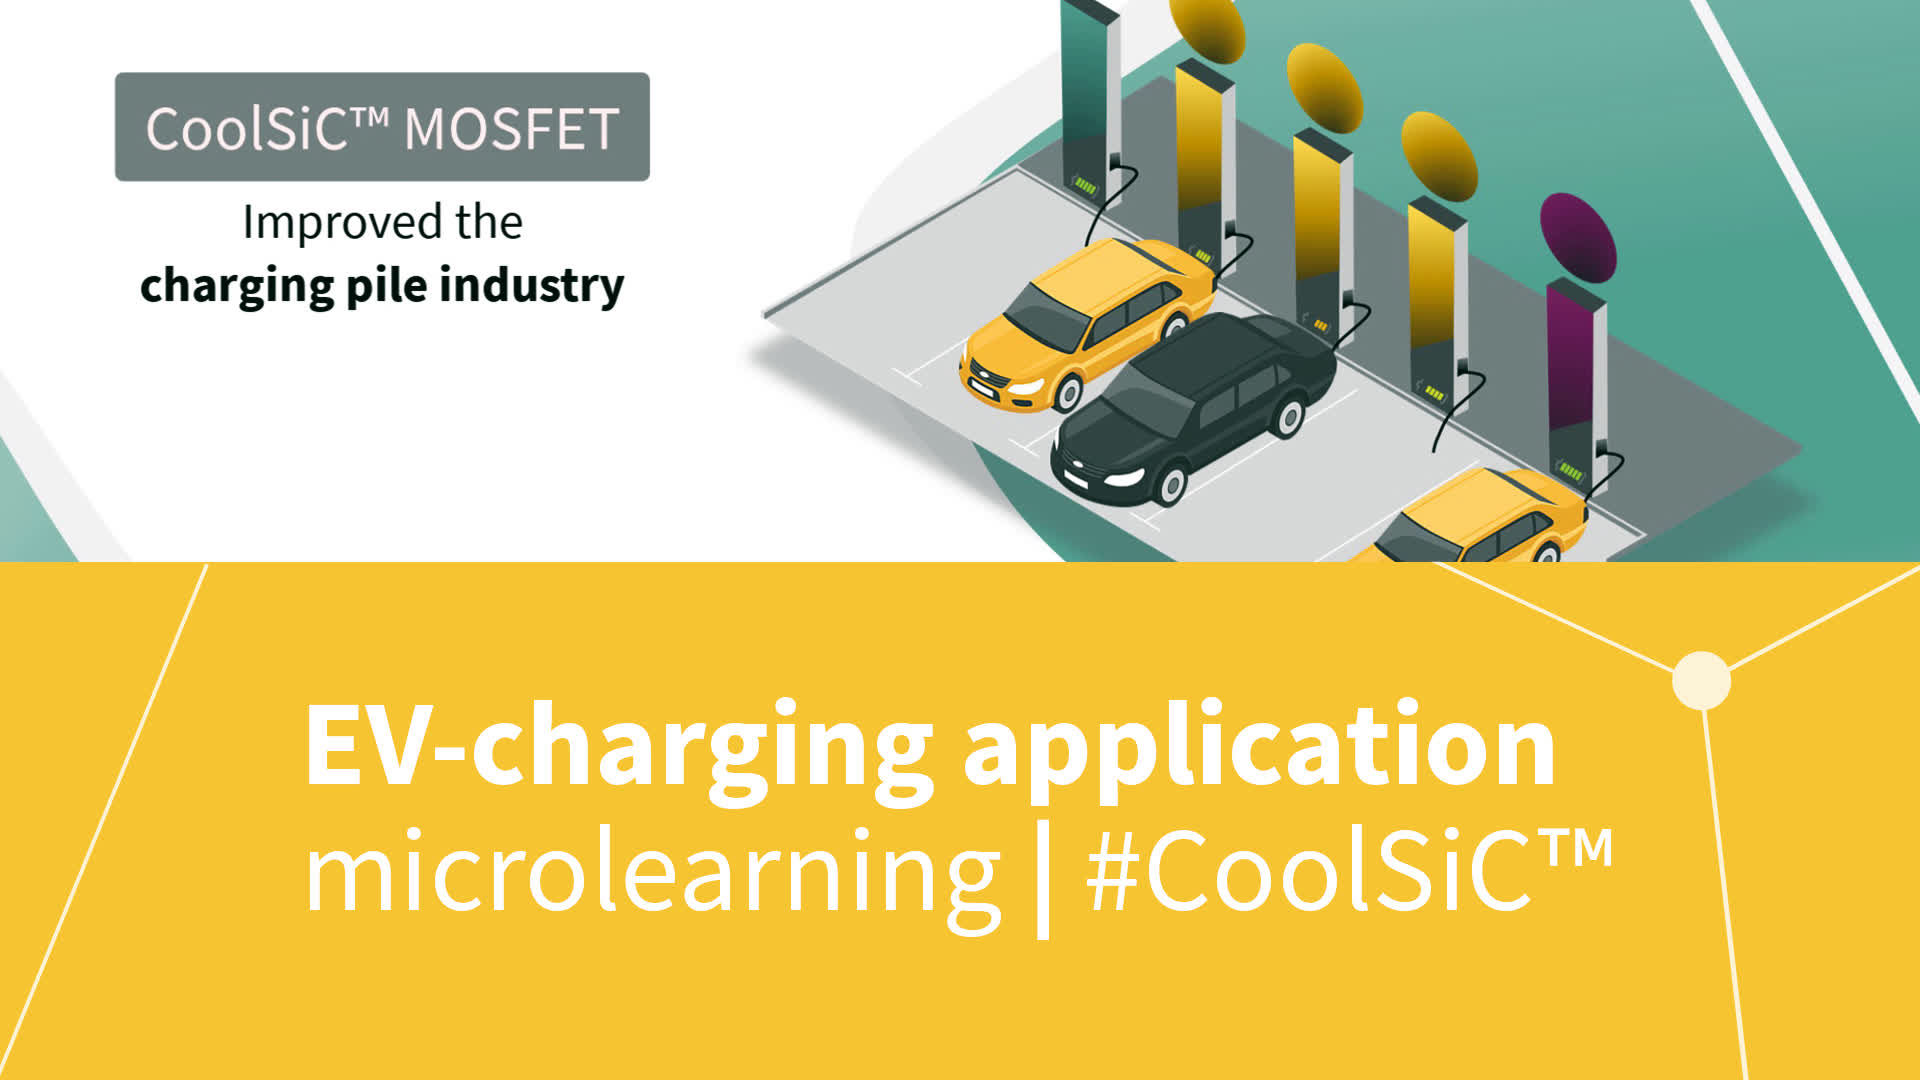 CoolSiC? MOSFET in an EV charging application